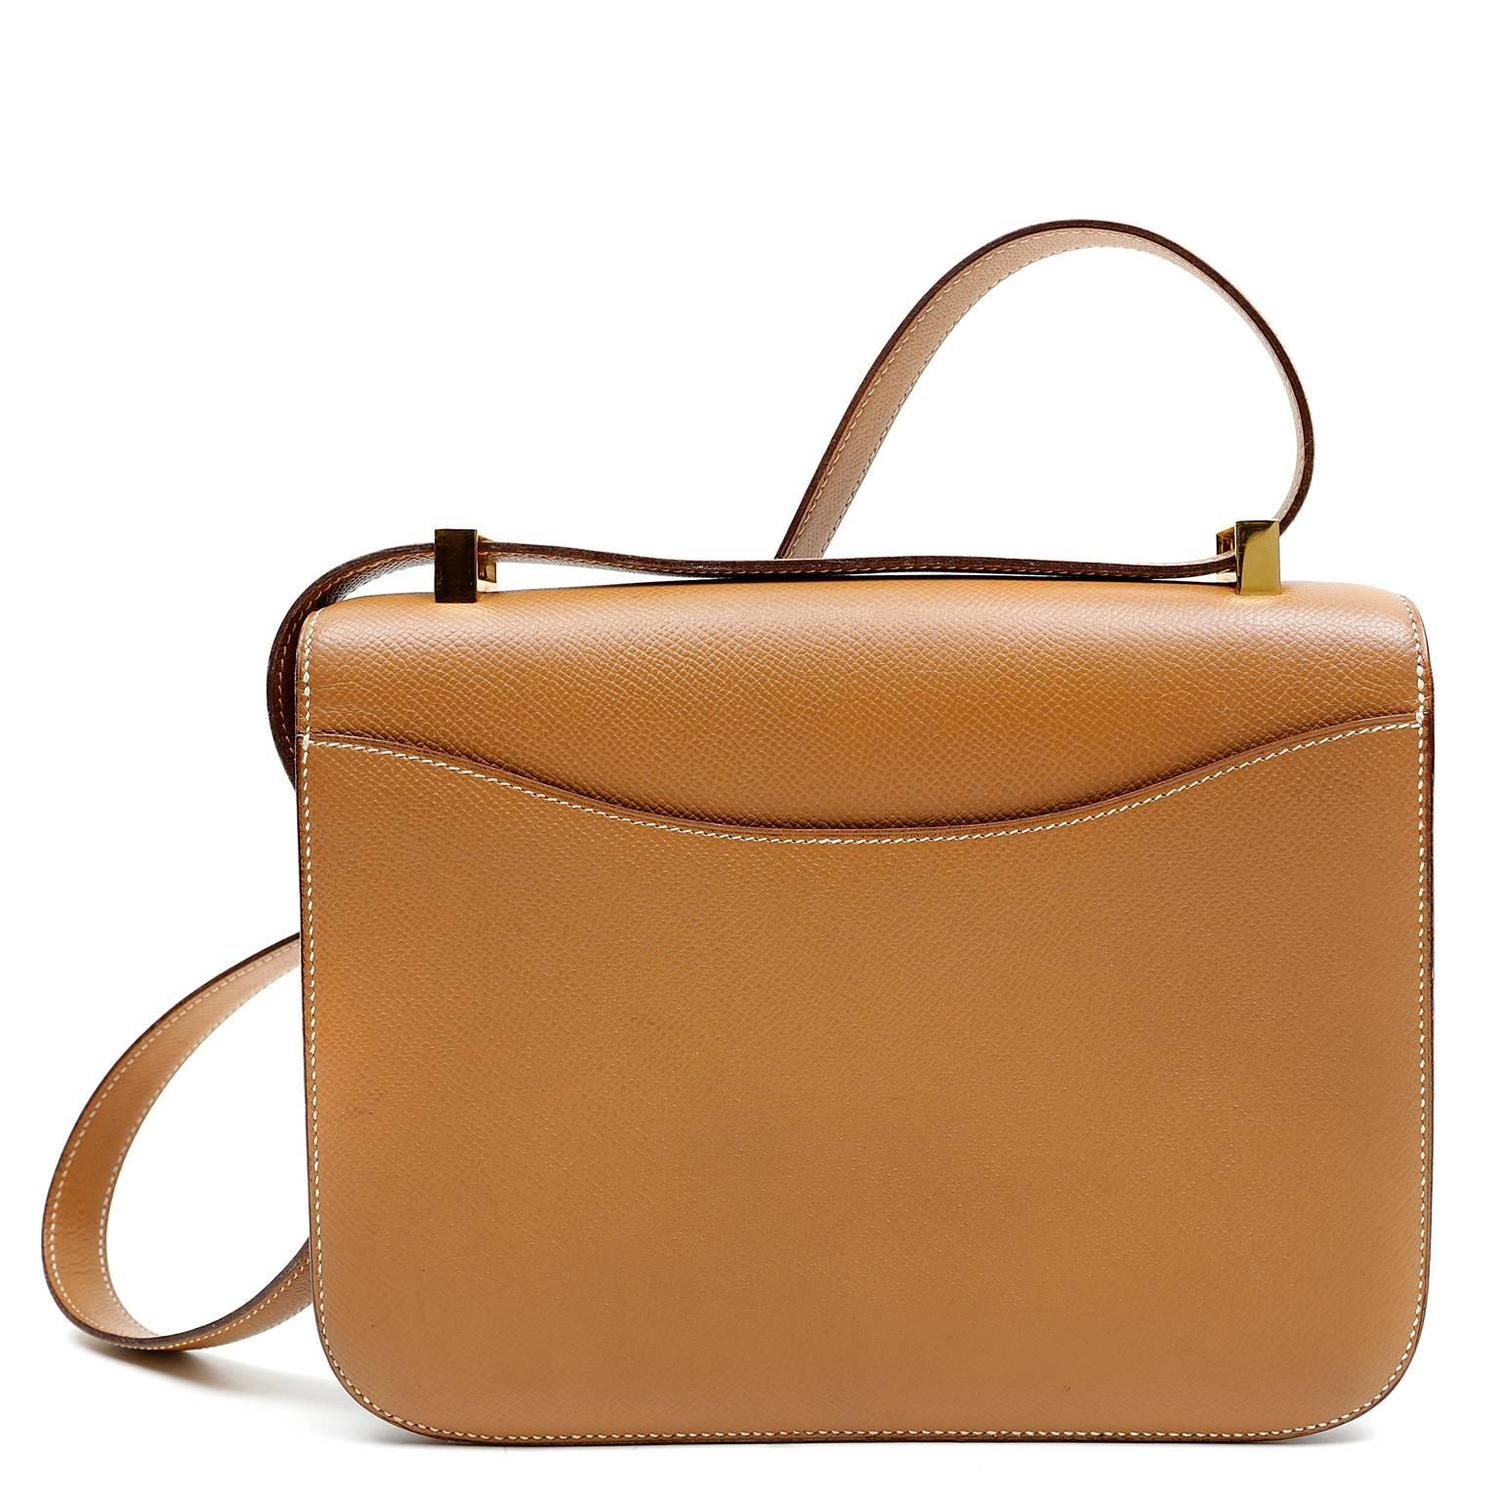 Herm��s Gold Epsom Leather Constance- 23 cm with GHW at 1stdibs